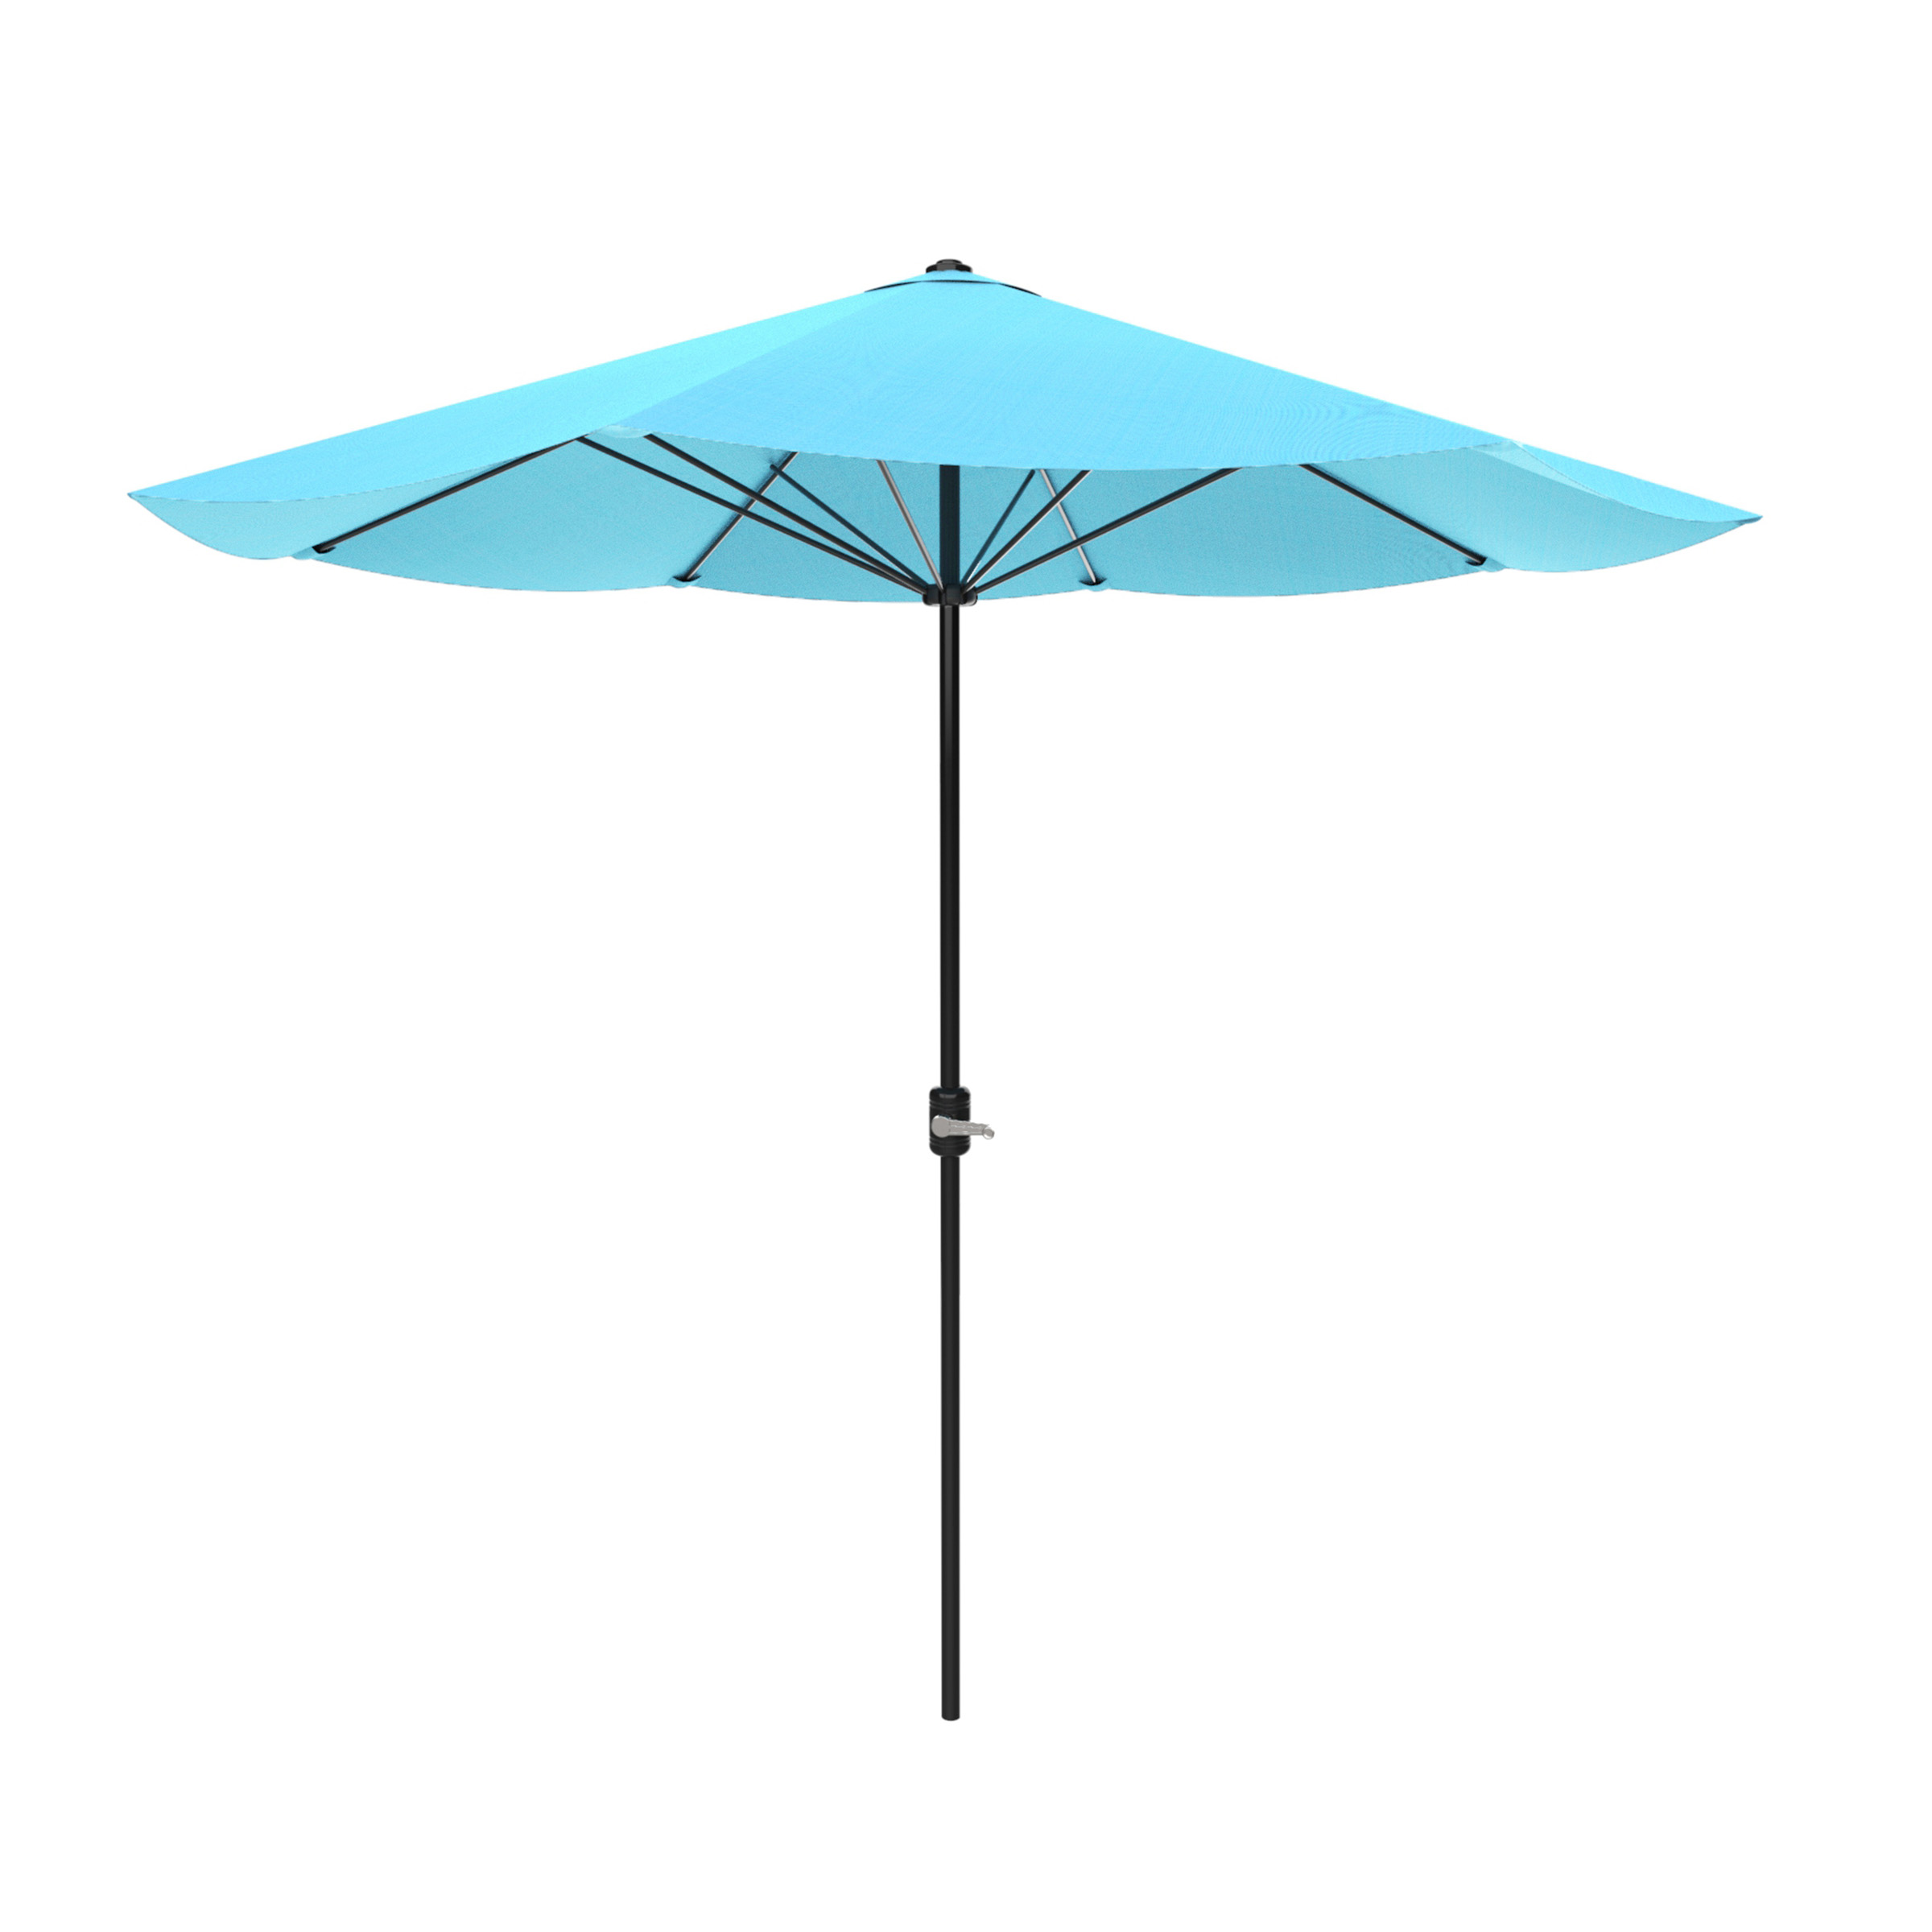 Patio Umbrella, Outdoor Shade With Easy Crank  Table Umbrella For Deck,  Balcony,